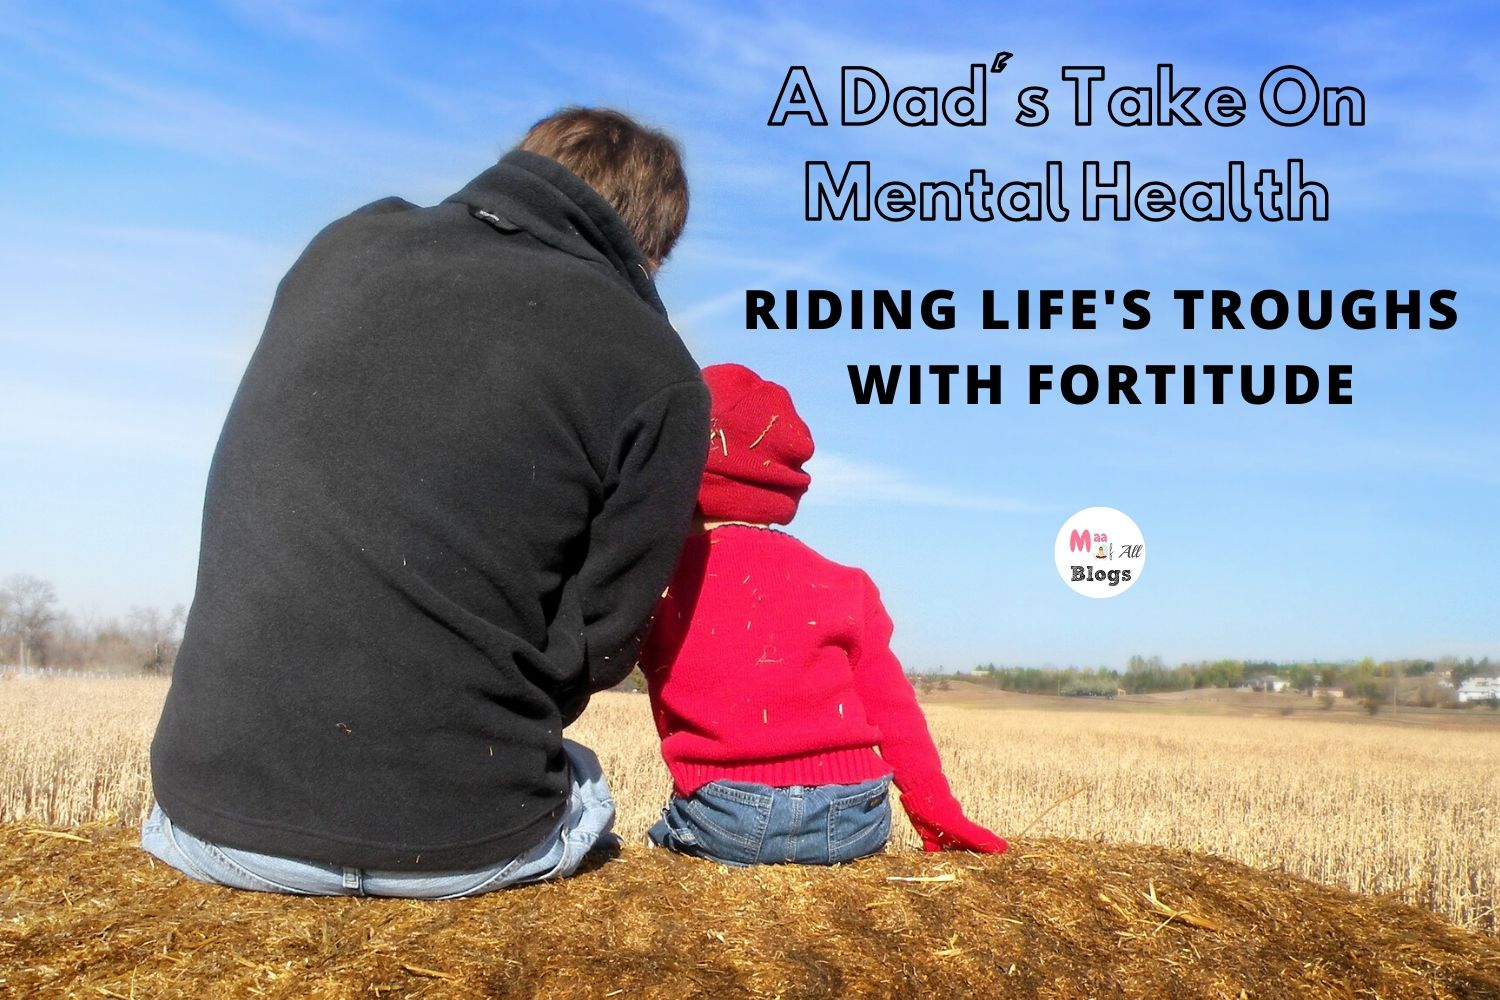 A Dad's Take On Mental Health